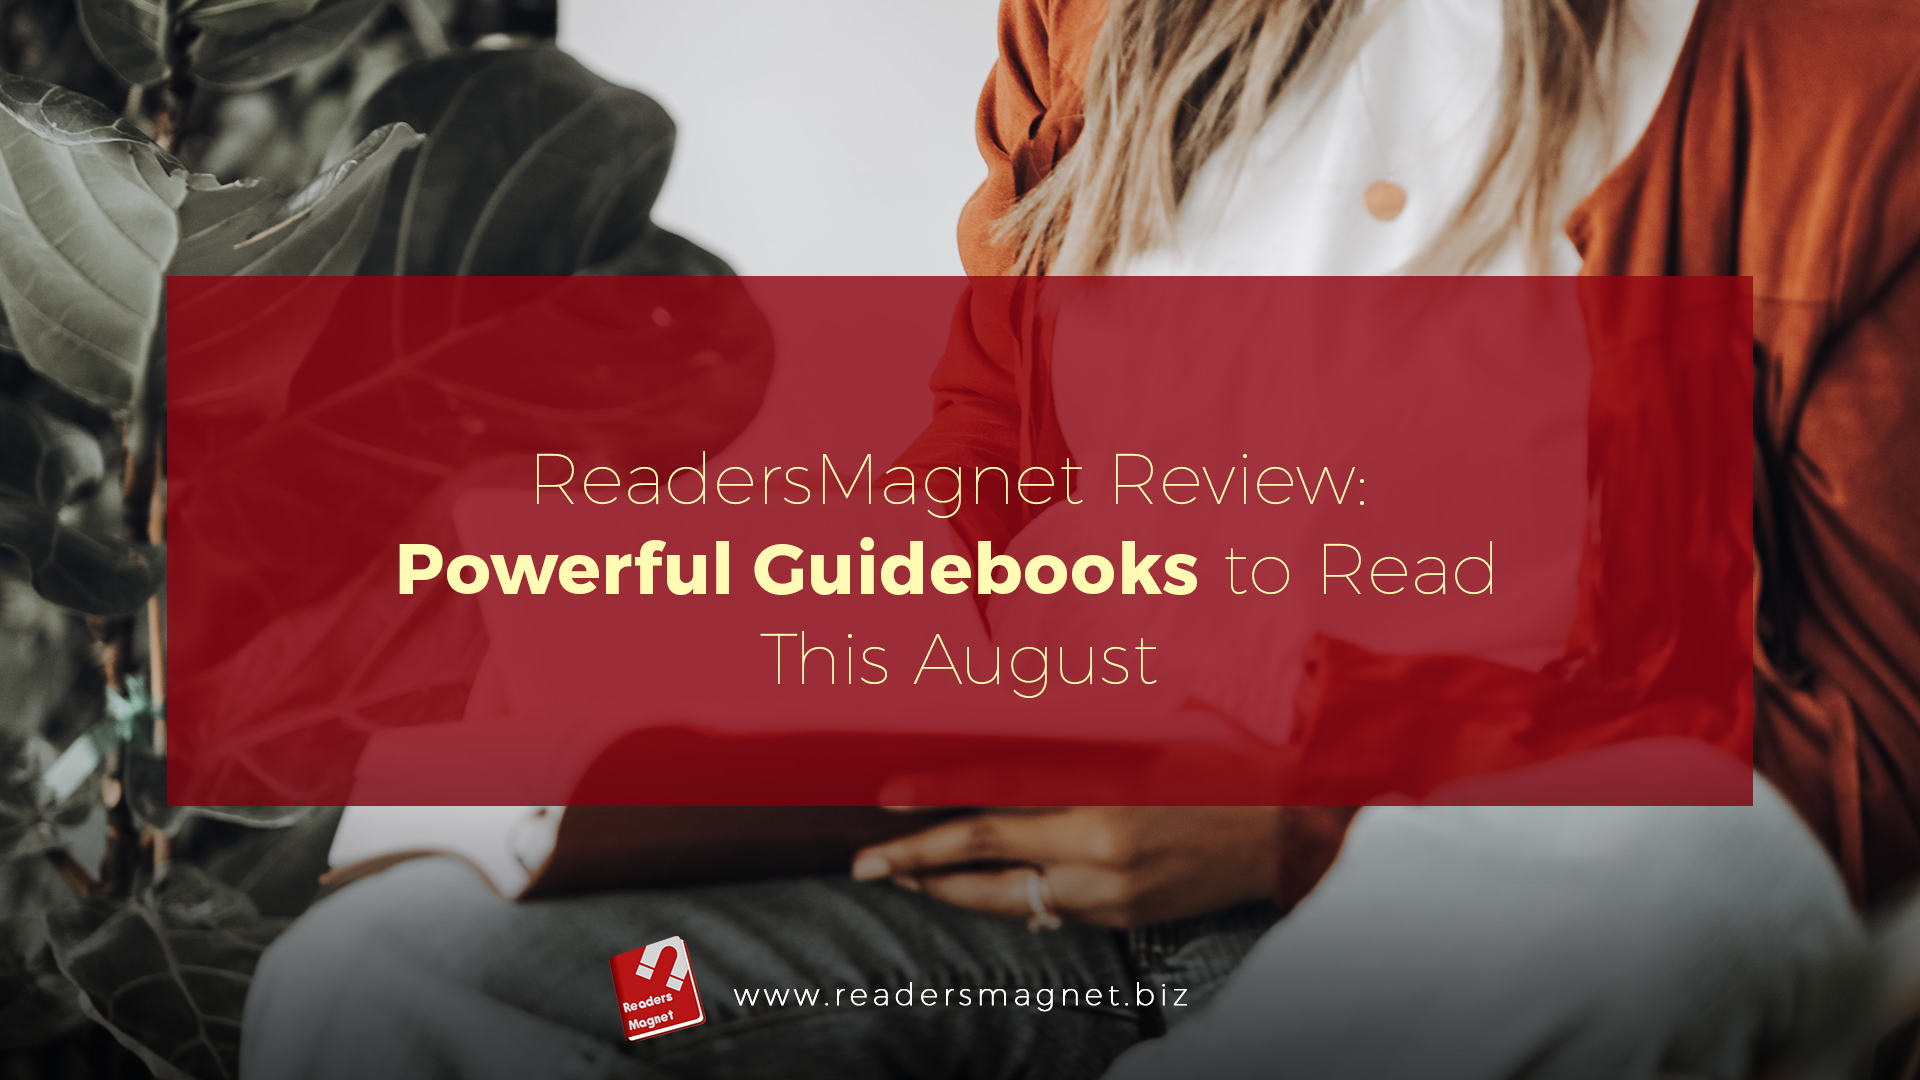 Powerful Guidebooks to Read This August